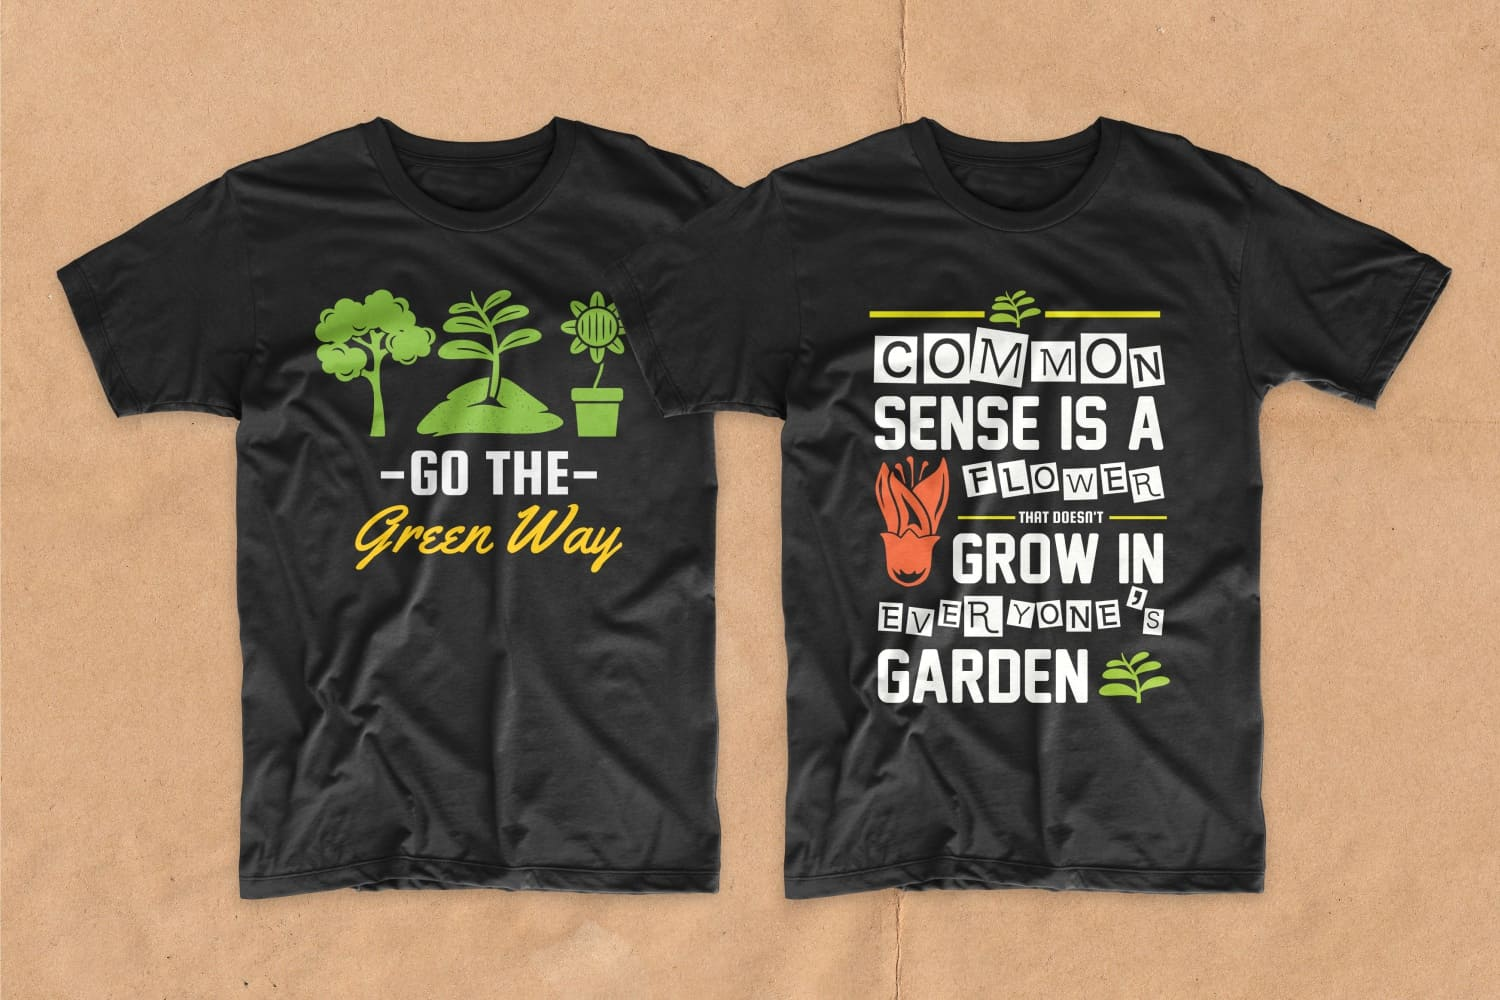 Two black T-shirts with flowers and leaves.